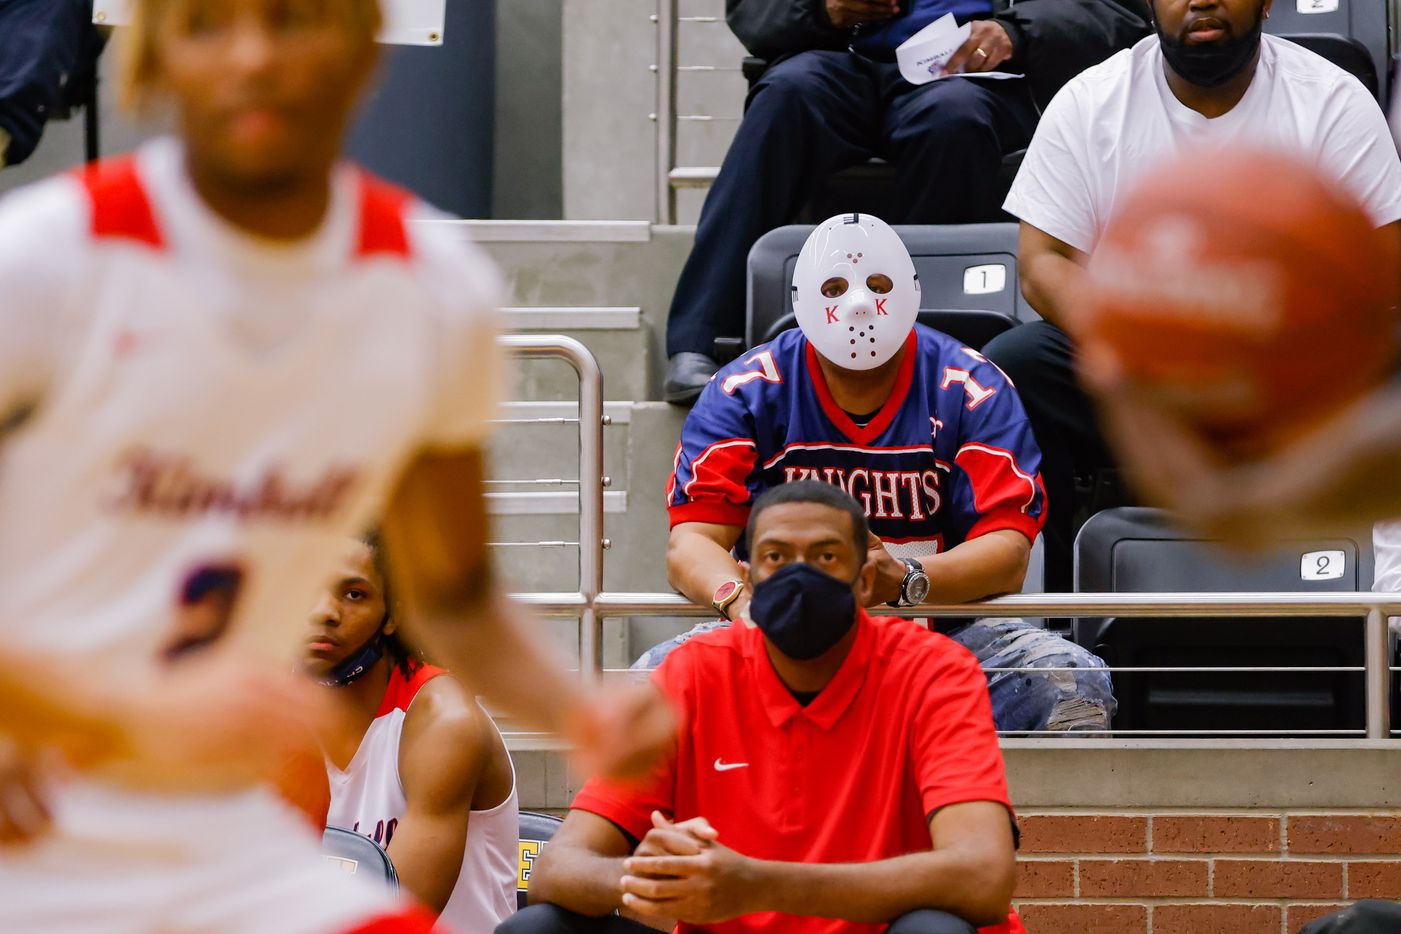 A Kimball fan wearing a goalie mask watches during the first half of a boys basketball UIL Class 5A Region II playoff game against Lancaster in Forney on Friday, March 5, 2021. (Juan Figueroa/ The Dallas Morning News)